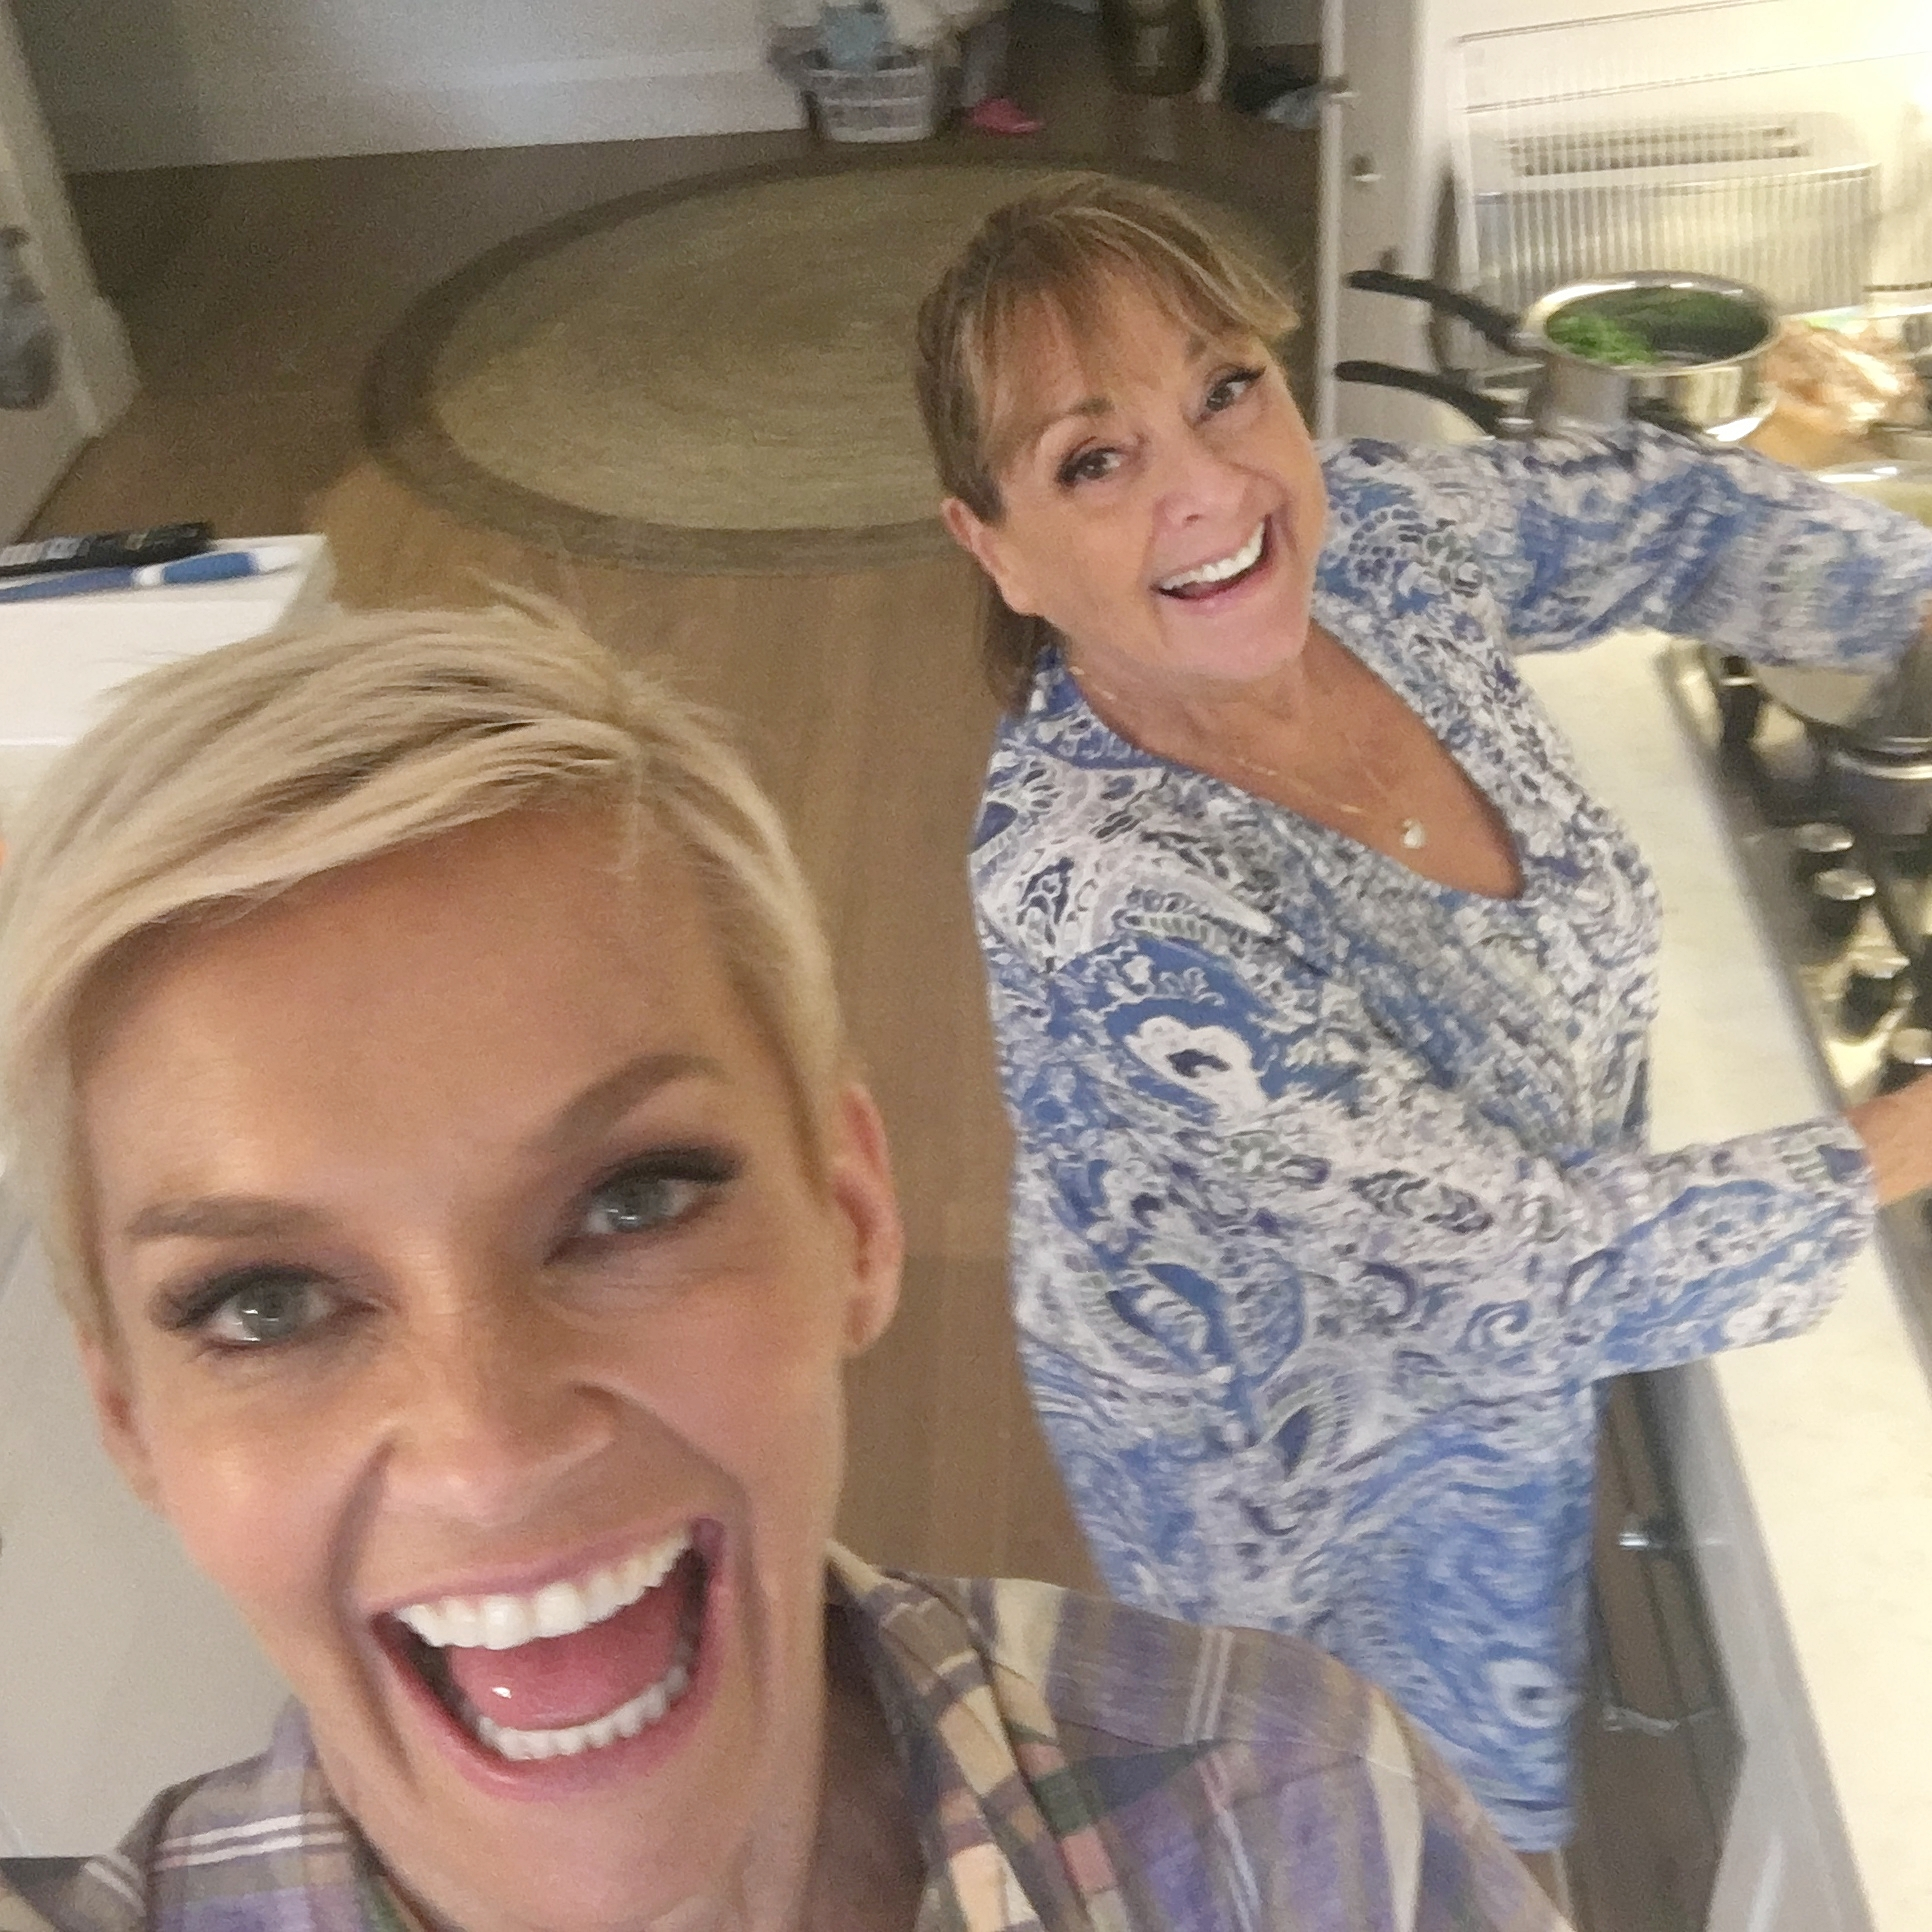 Cooking with Denise and panko!